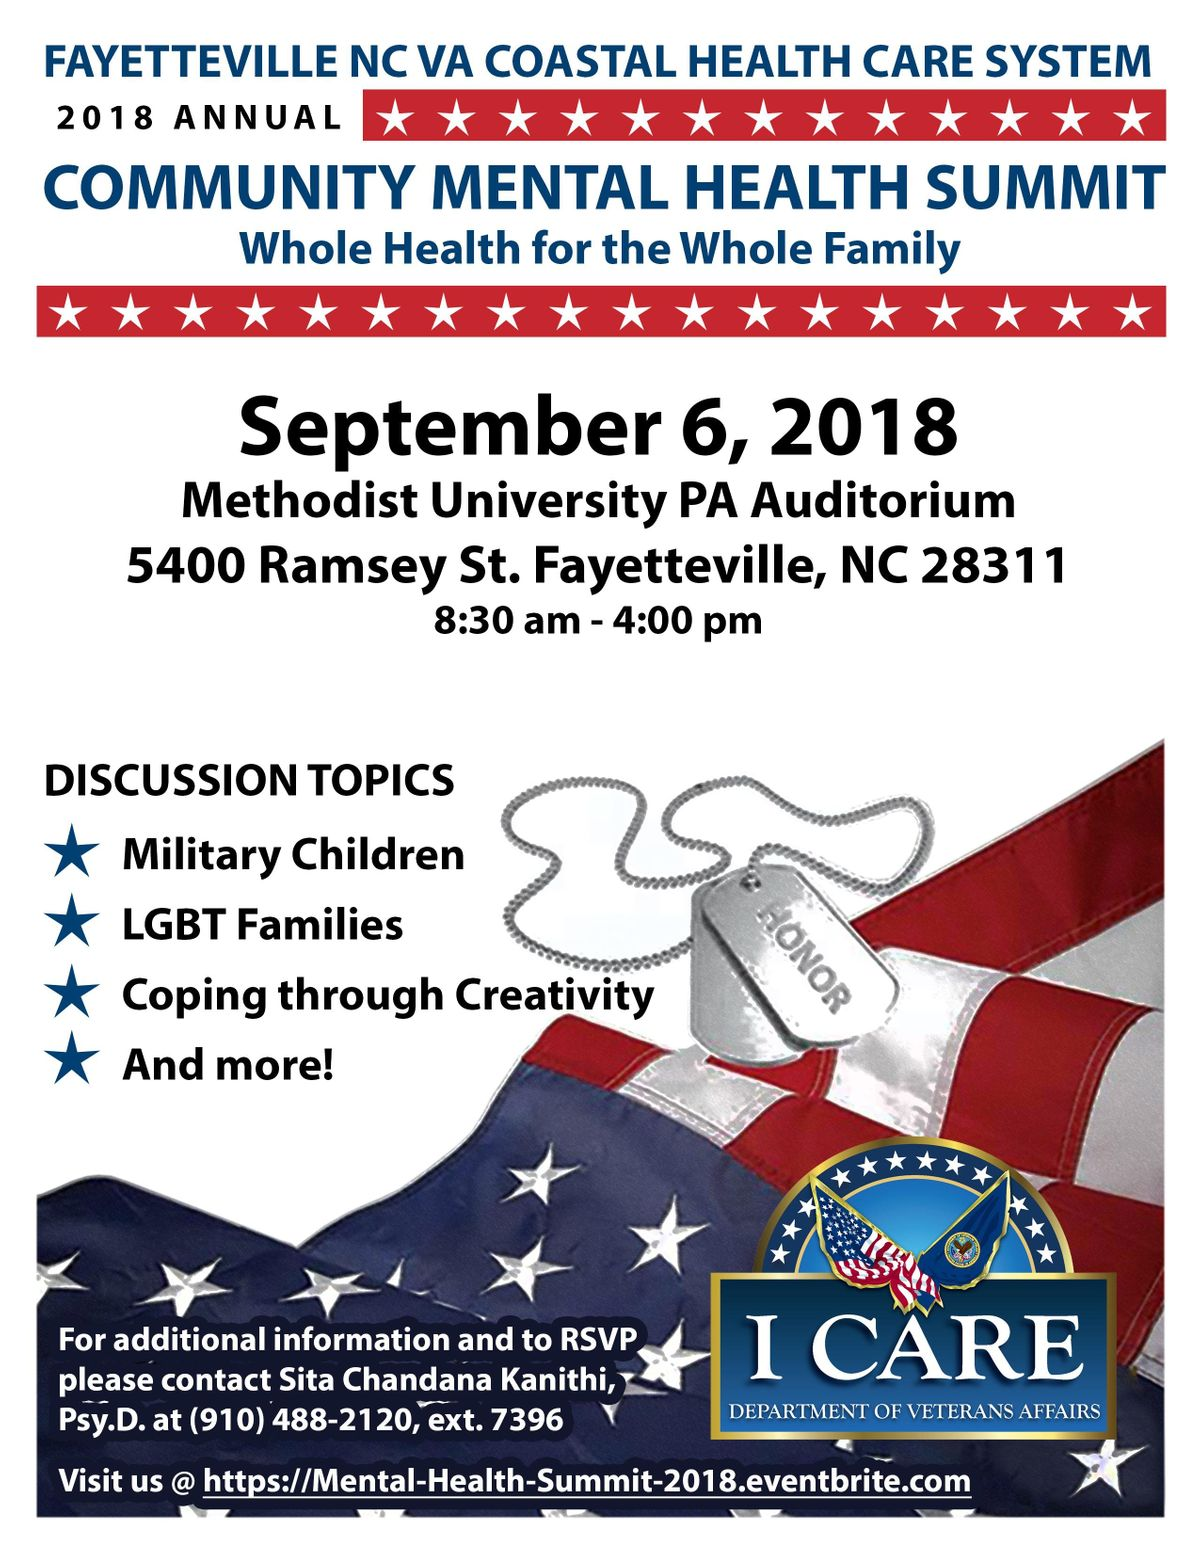 Va Community Mental Health Summit Whole Health For The Whole Family